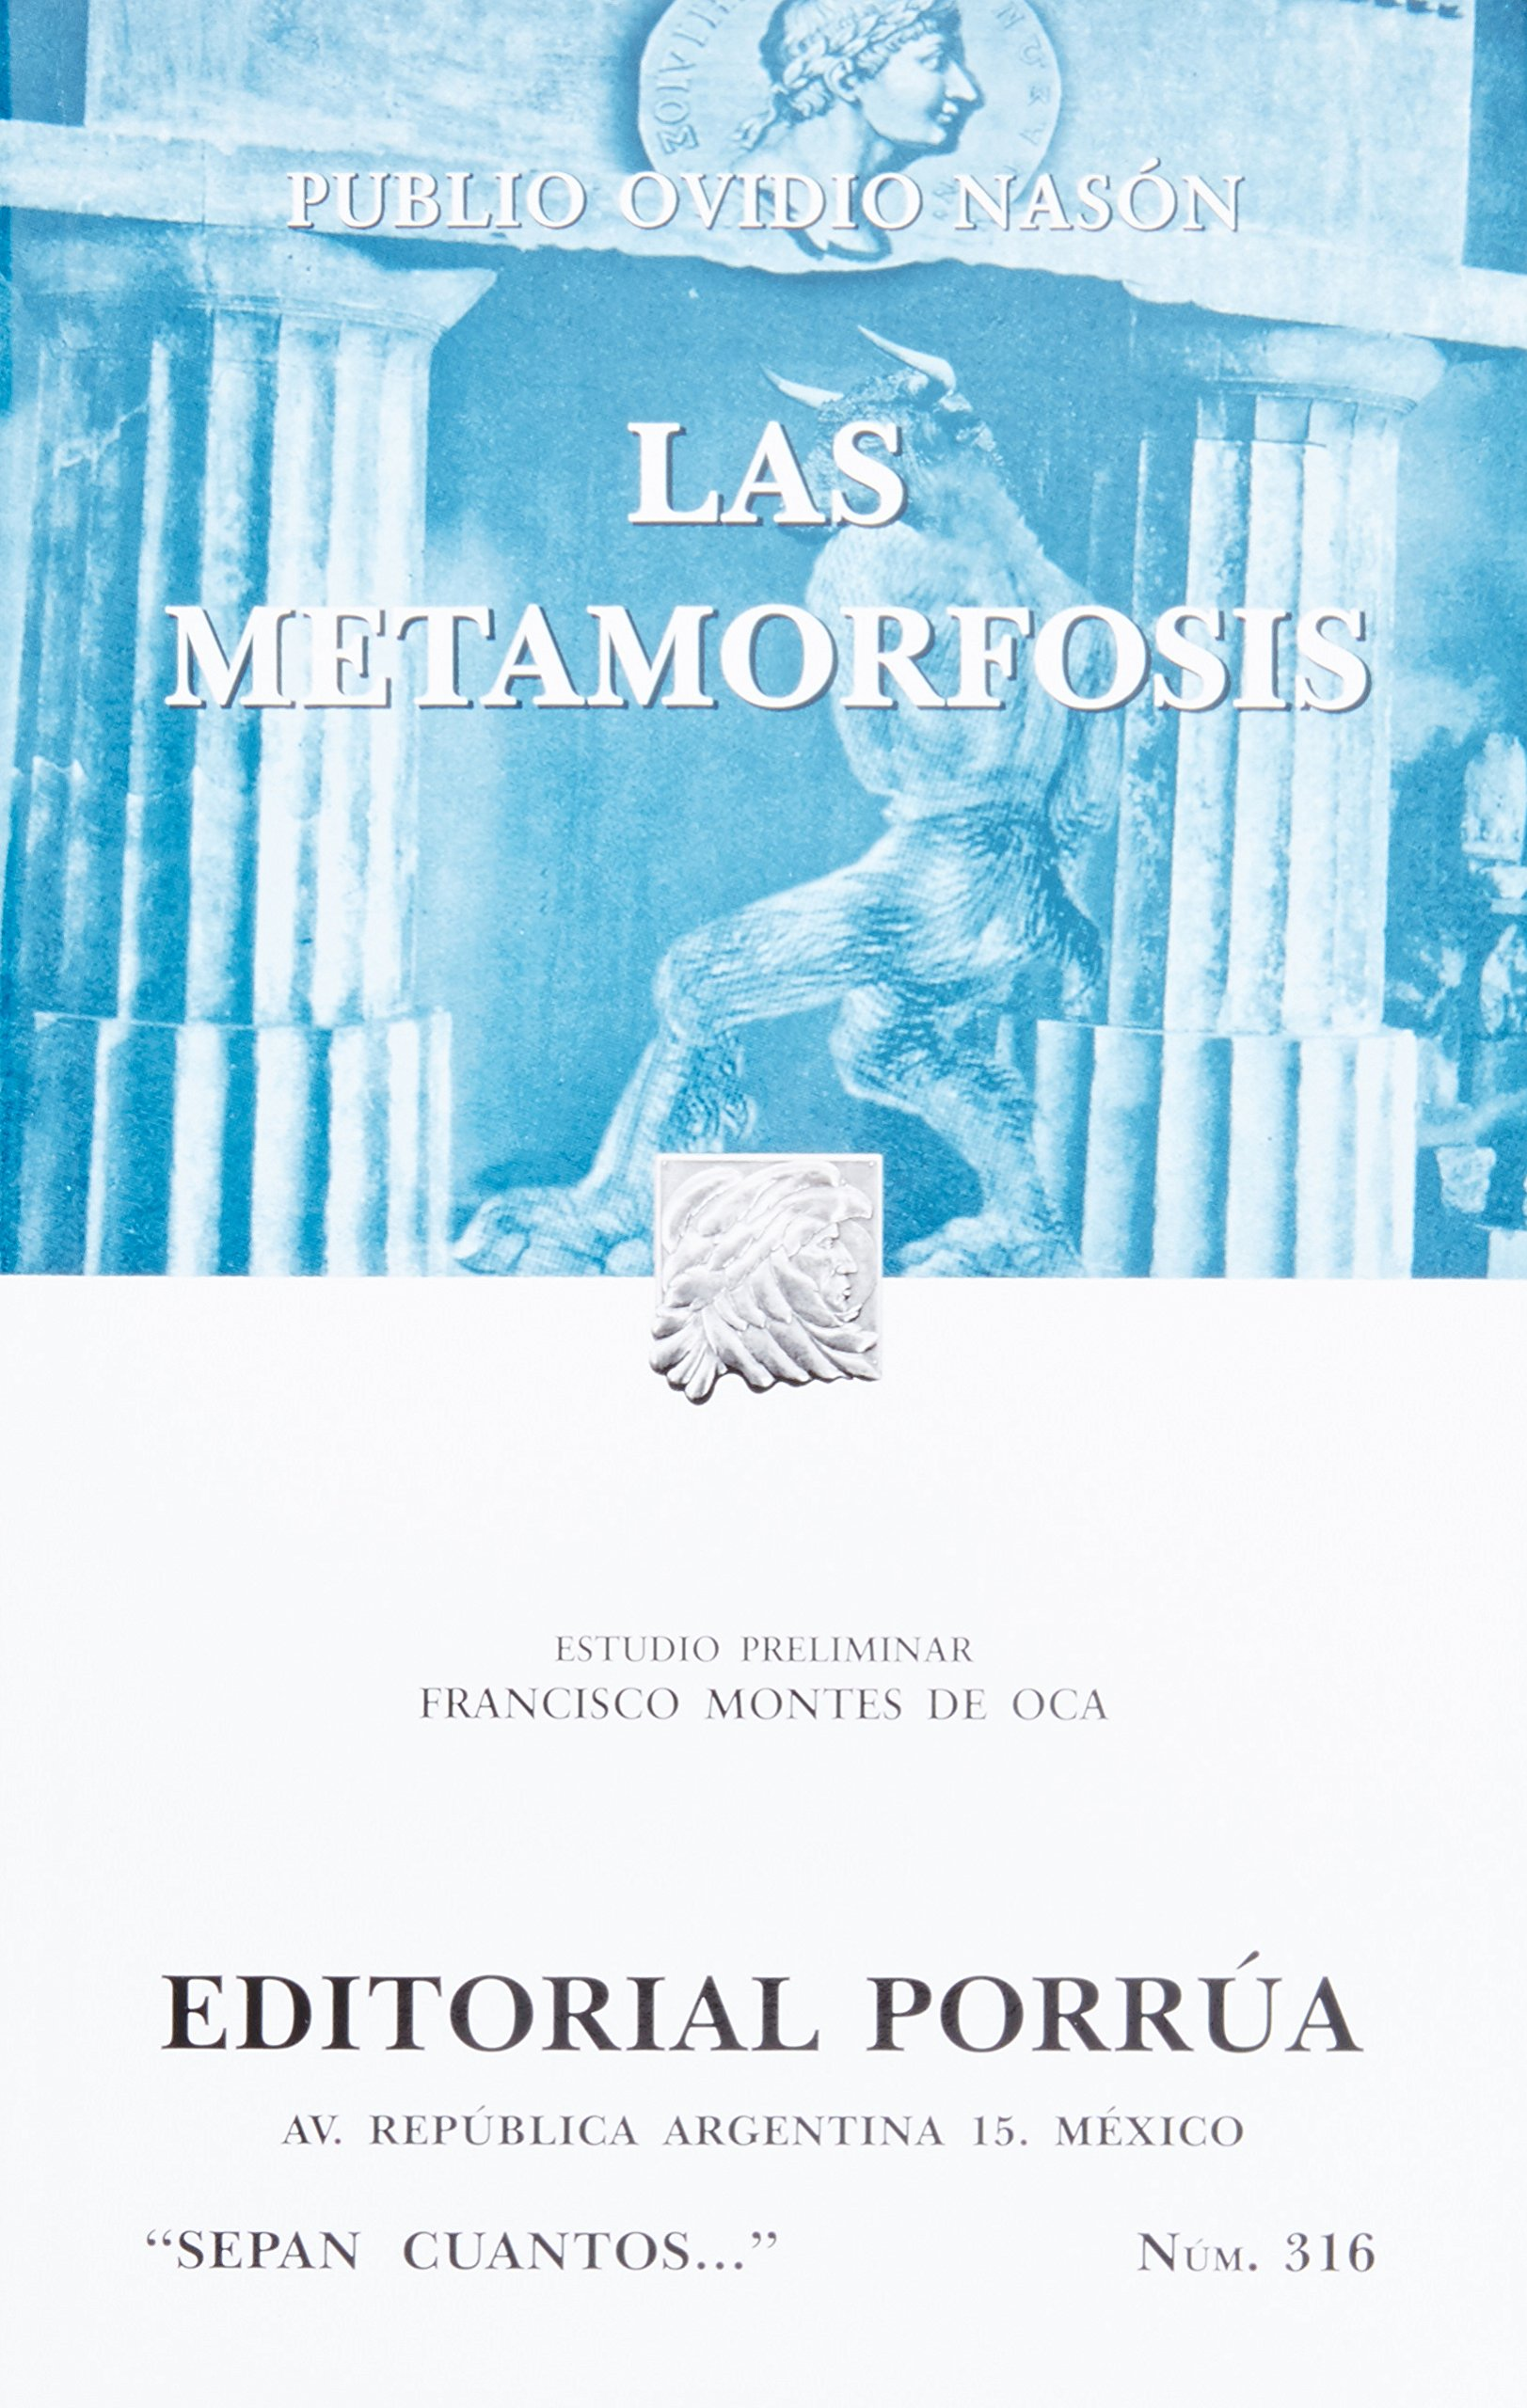 Las metamorfosis (SC316) (Spanish Edition): Publio Ovidio Nason: 9789700766652: Amazon.com: Books